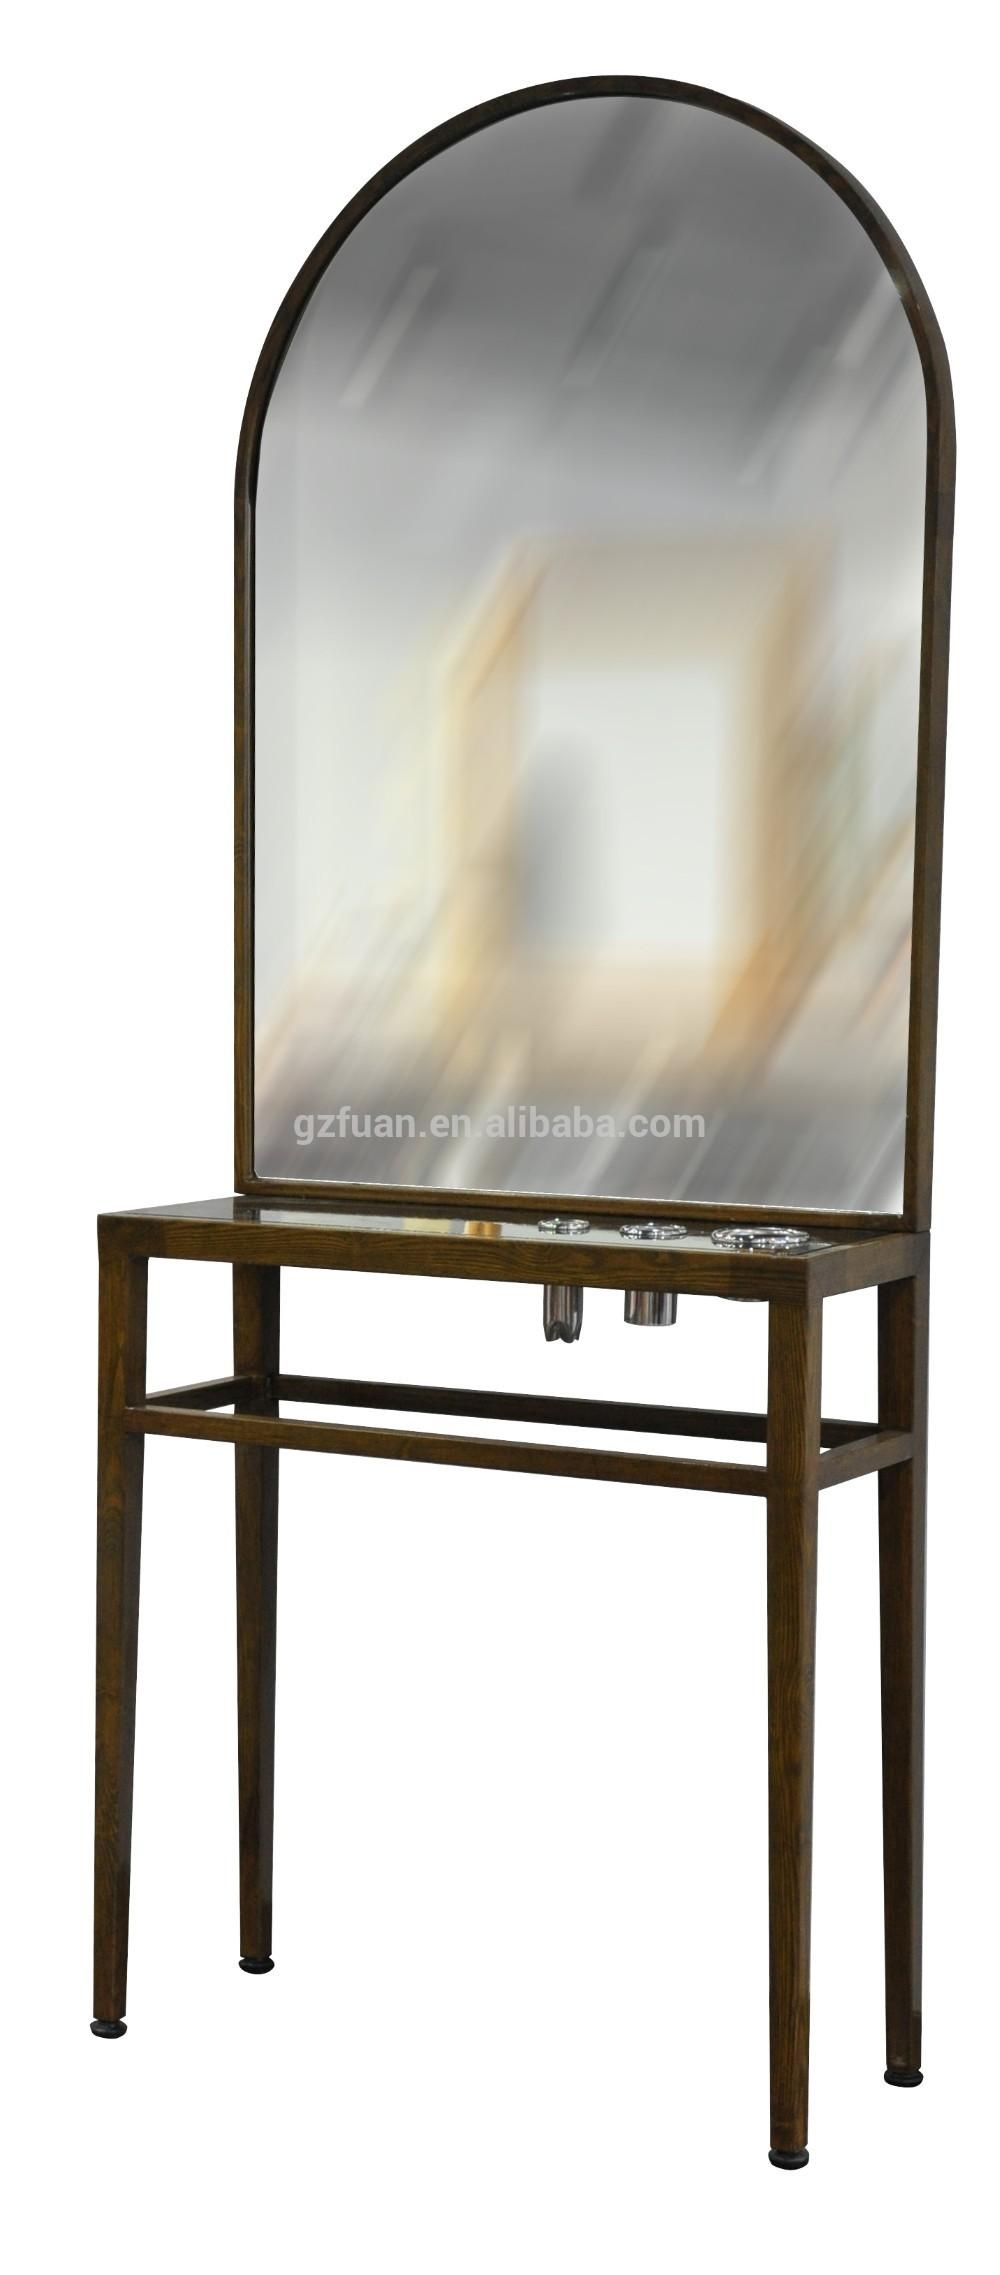 Hair Styling Mirrors, Hair Styling Mirrors Suppliers And Regarding Hairdressing Mirrors For Sale (Image 15 of 20)